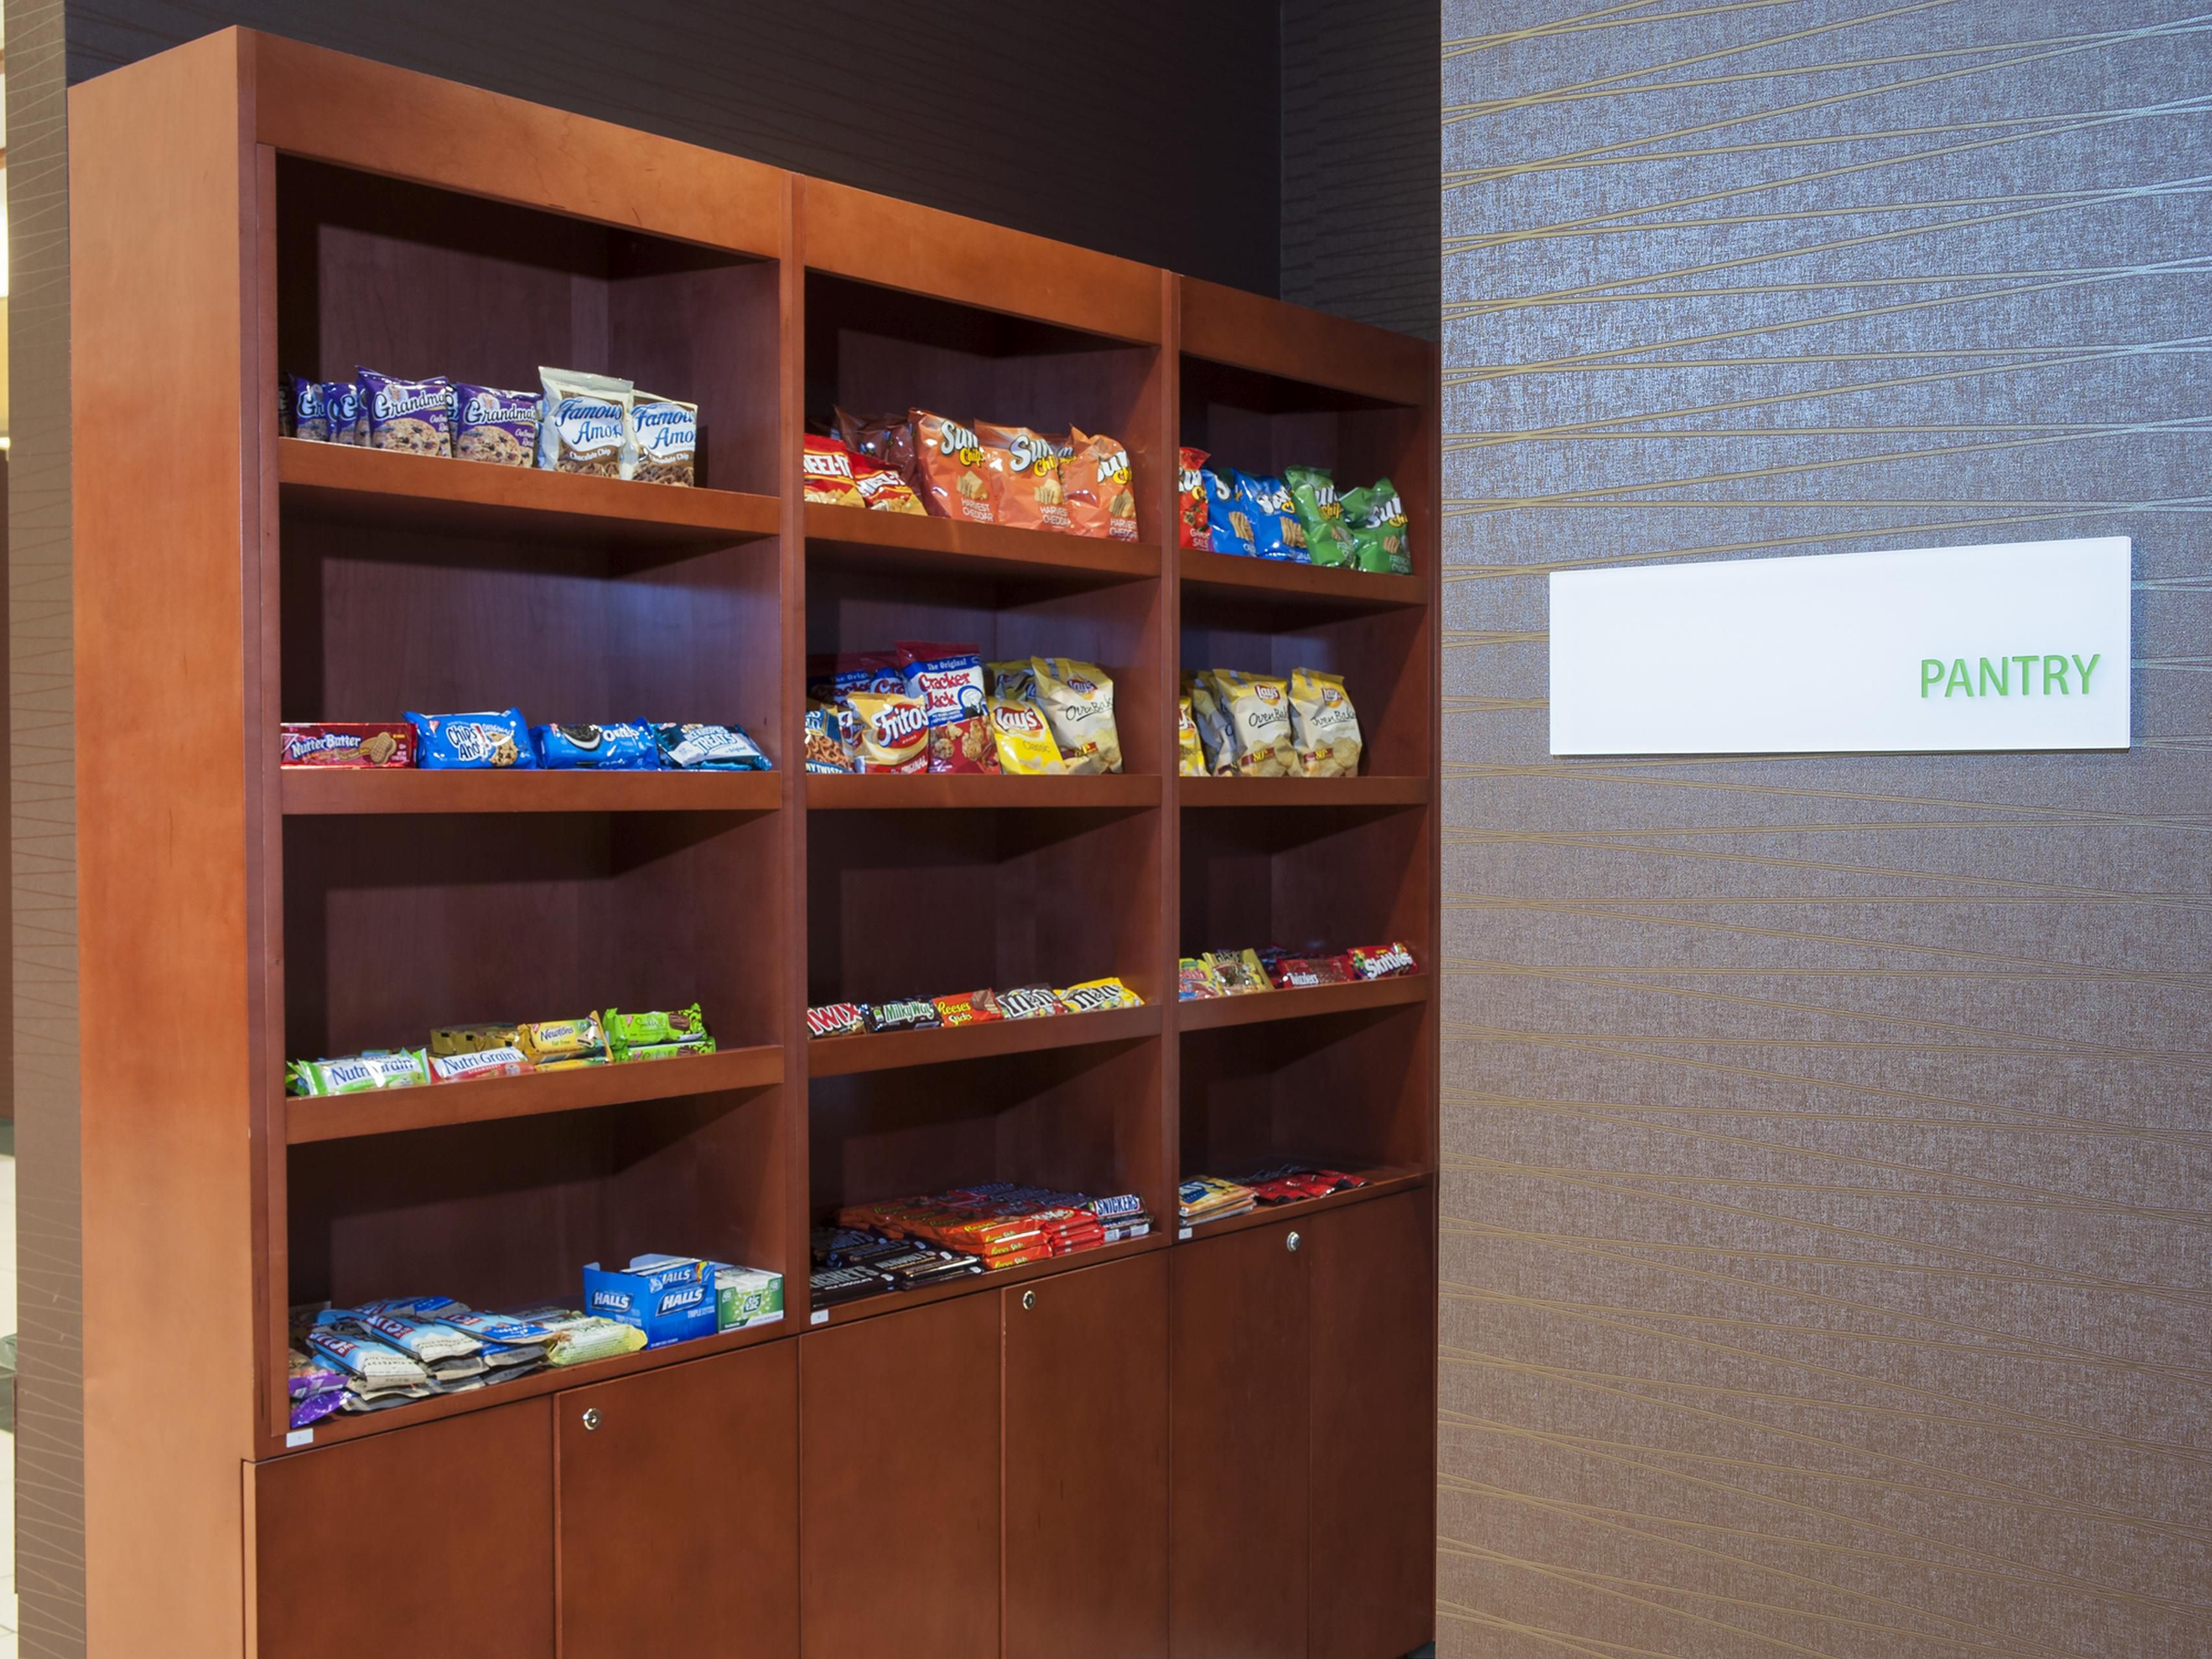 Stop by and grab a Snack in our 24-hour Pantry